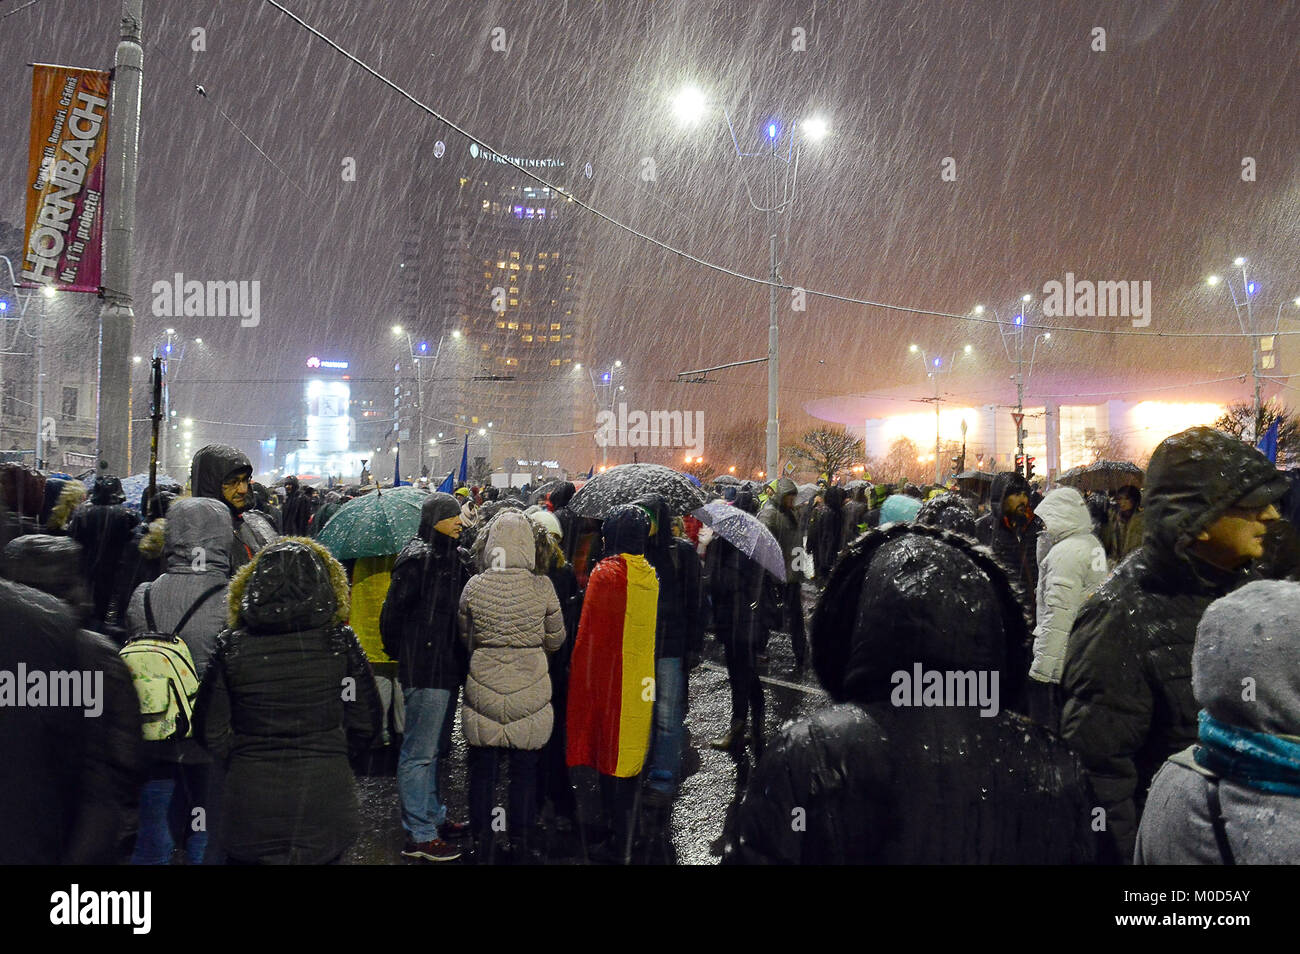 BUCHAREST, ROMANIA - 20 JAN 2018: Crowds gather in University Square protesting government intent to decriminalise - Stock Image